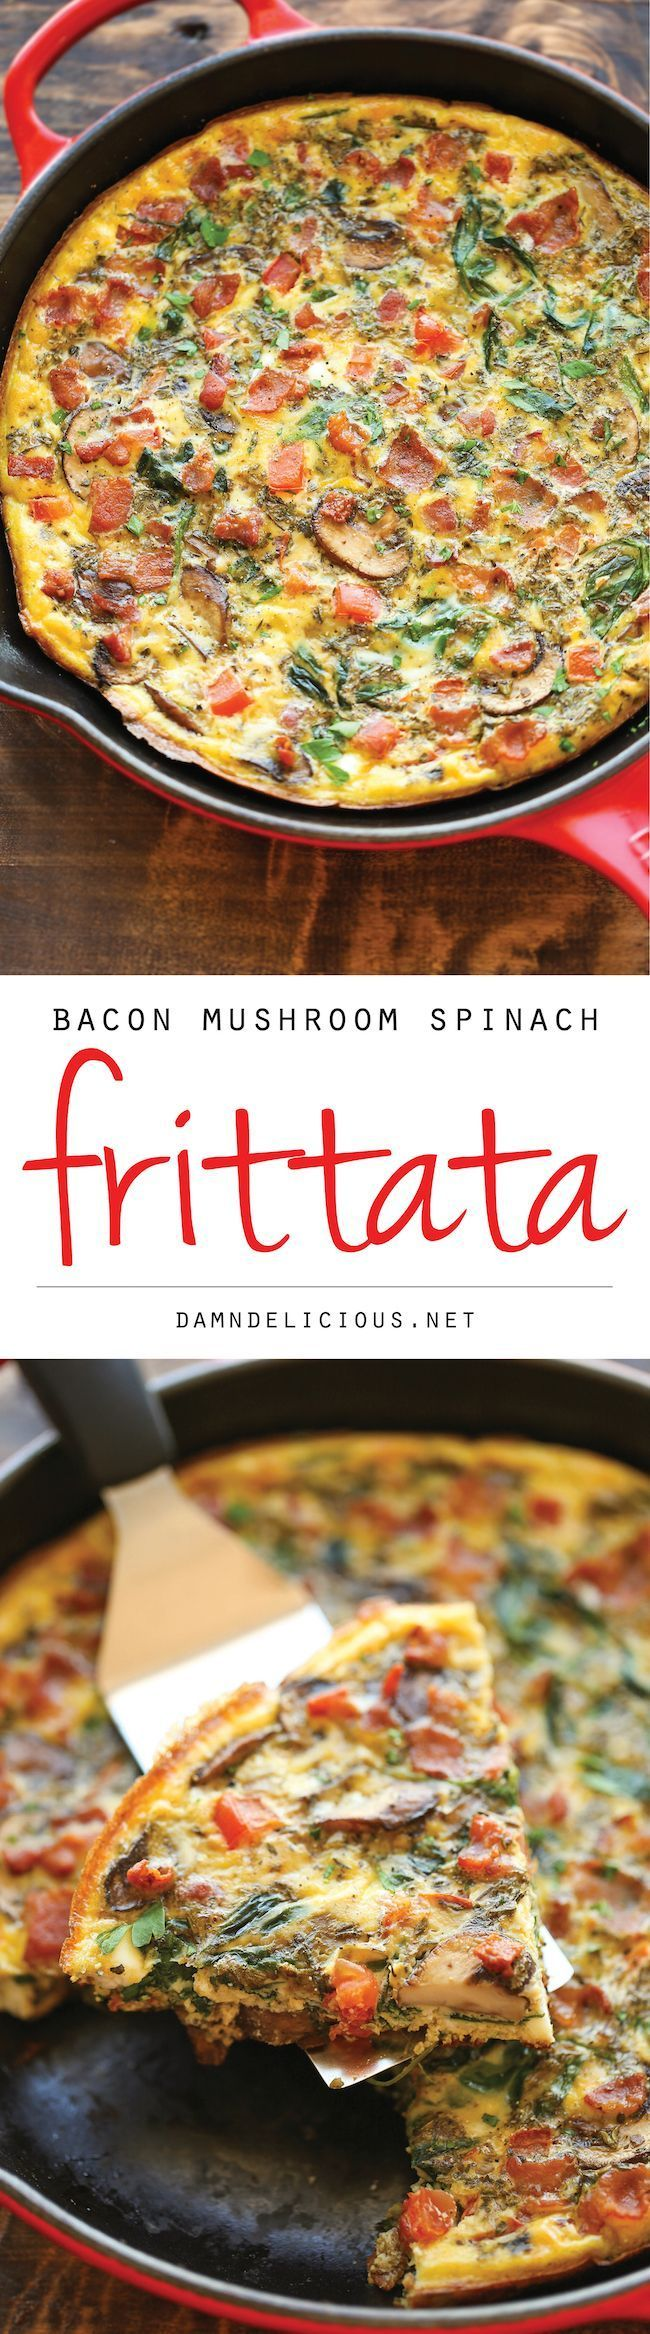 Bacon Mushroom Spinach Frittata - So quick, so easy and so perfect as a quick weeknight dinner or fancy brunch for Mother's Day - and you can make it ahead of time too!